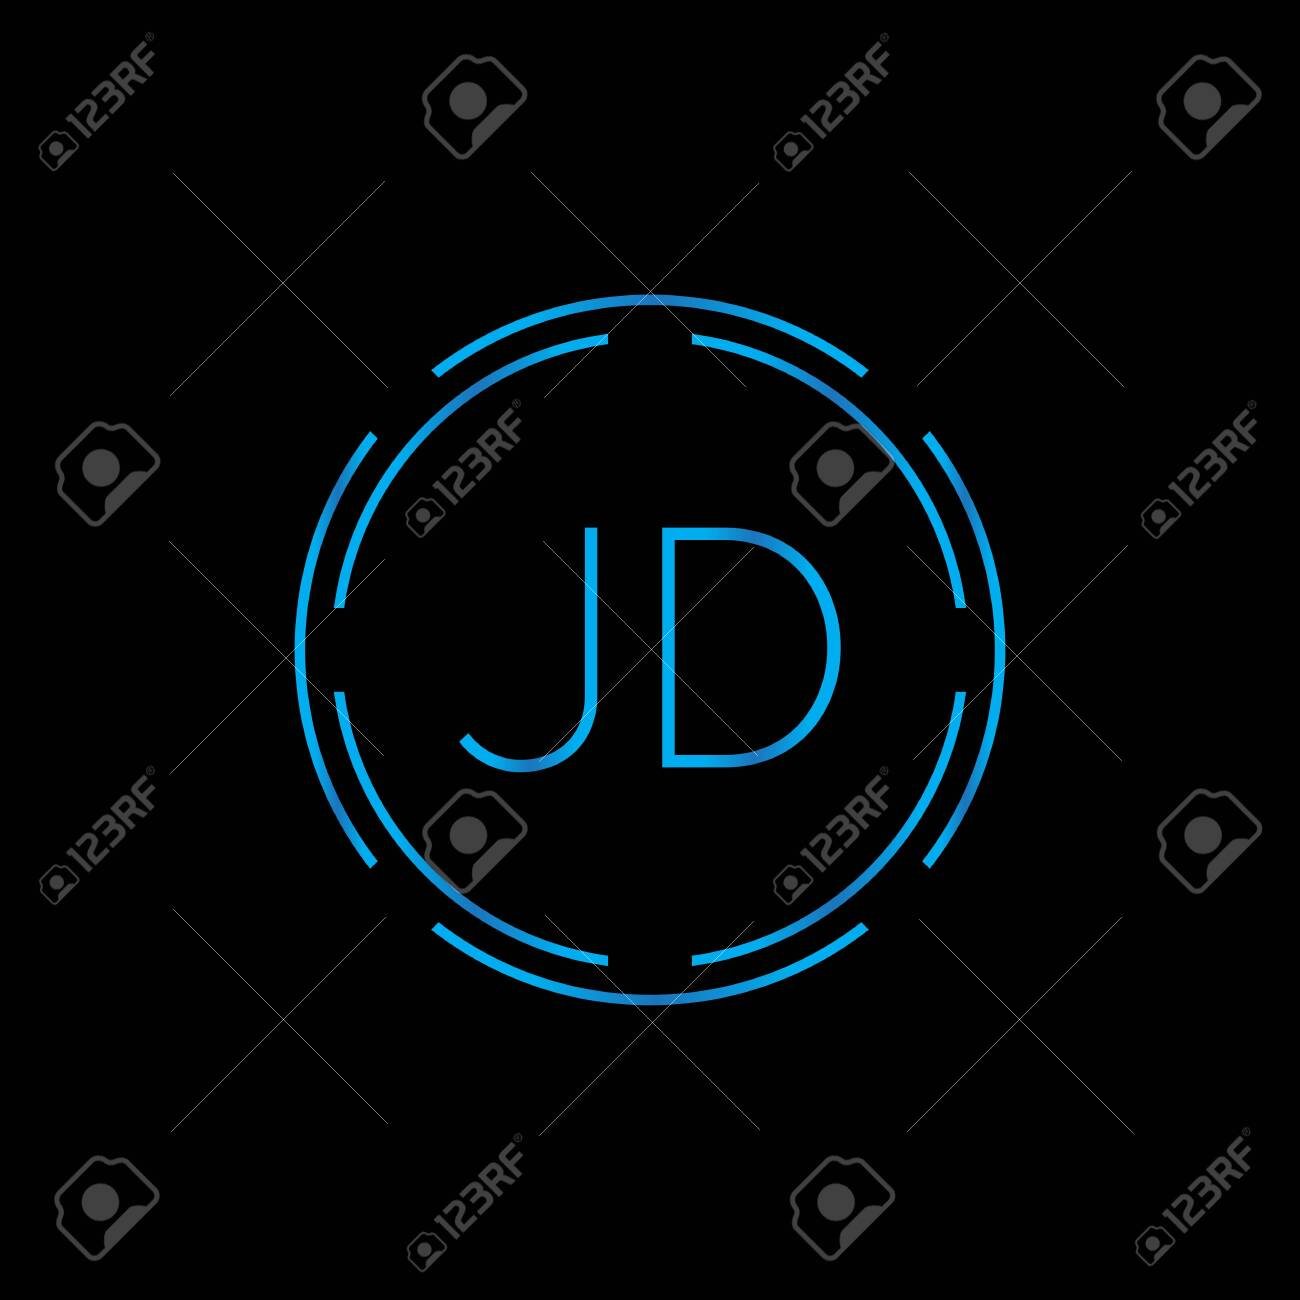 creative letter jd logo design vector template digital linked royalty free cliparts vectors and stock illustration image 146257705 creative letter jd logo design vector template digital linked